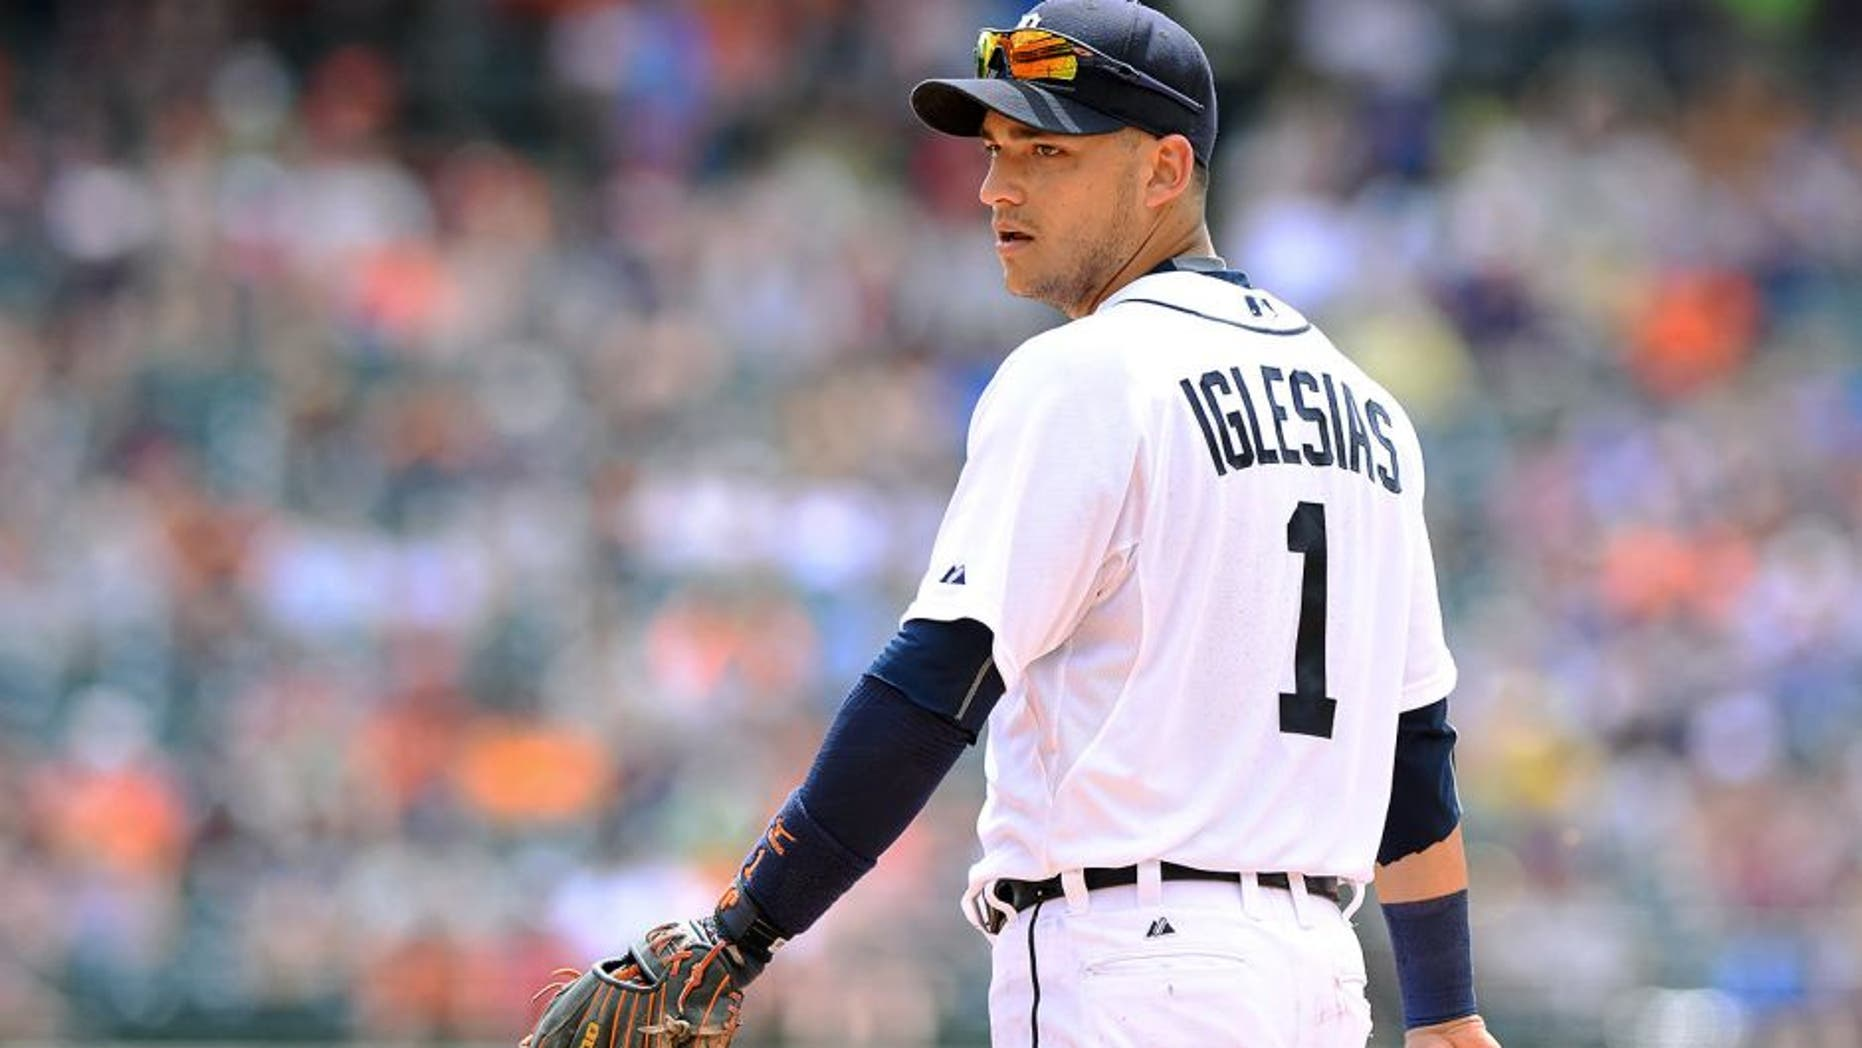 DETROIT, MI - JULY 19: Jose Iglesias #1 of the Detroit Tigers looks on during the game against the Baltimore Orioles at Comerica Park on July 19, 2015 in Detroit, Michigan. The Orioles defeated the Tigers 9-3. (Photo by Mark Cunningham/MLB Photos via Getty Images)